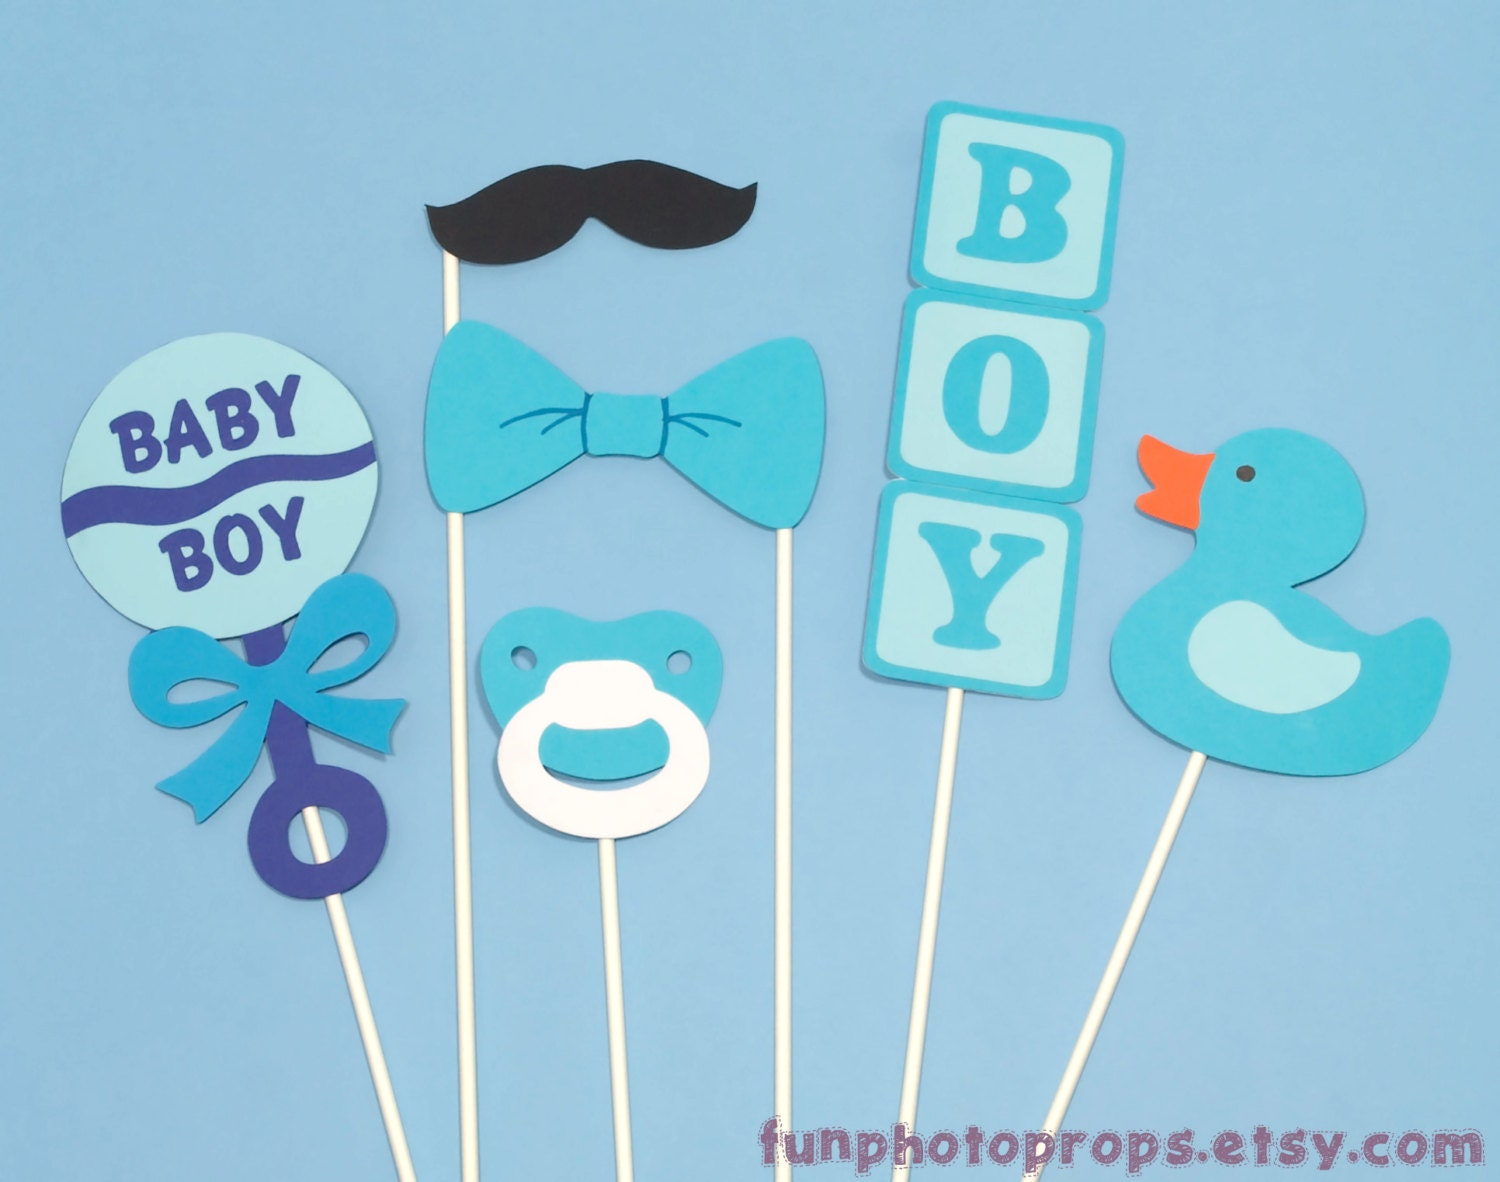 photo booth prop set 6 piece baby boy photobooth by funphotoprops